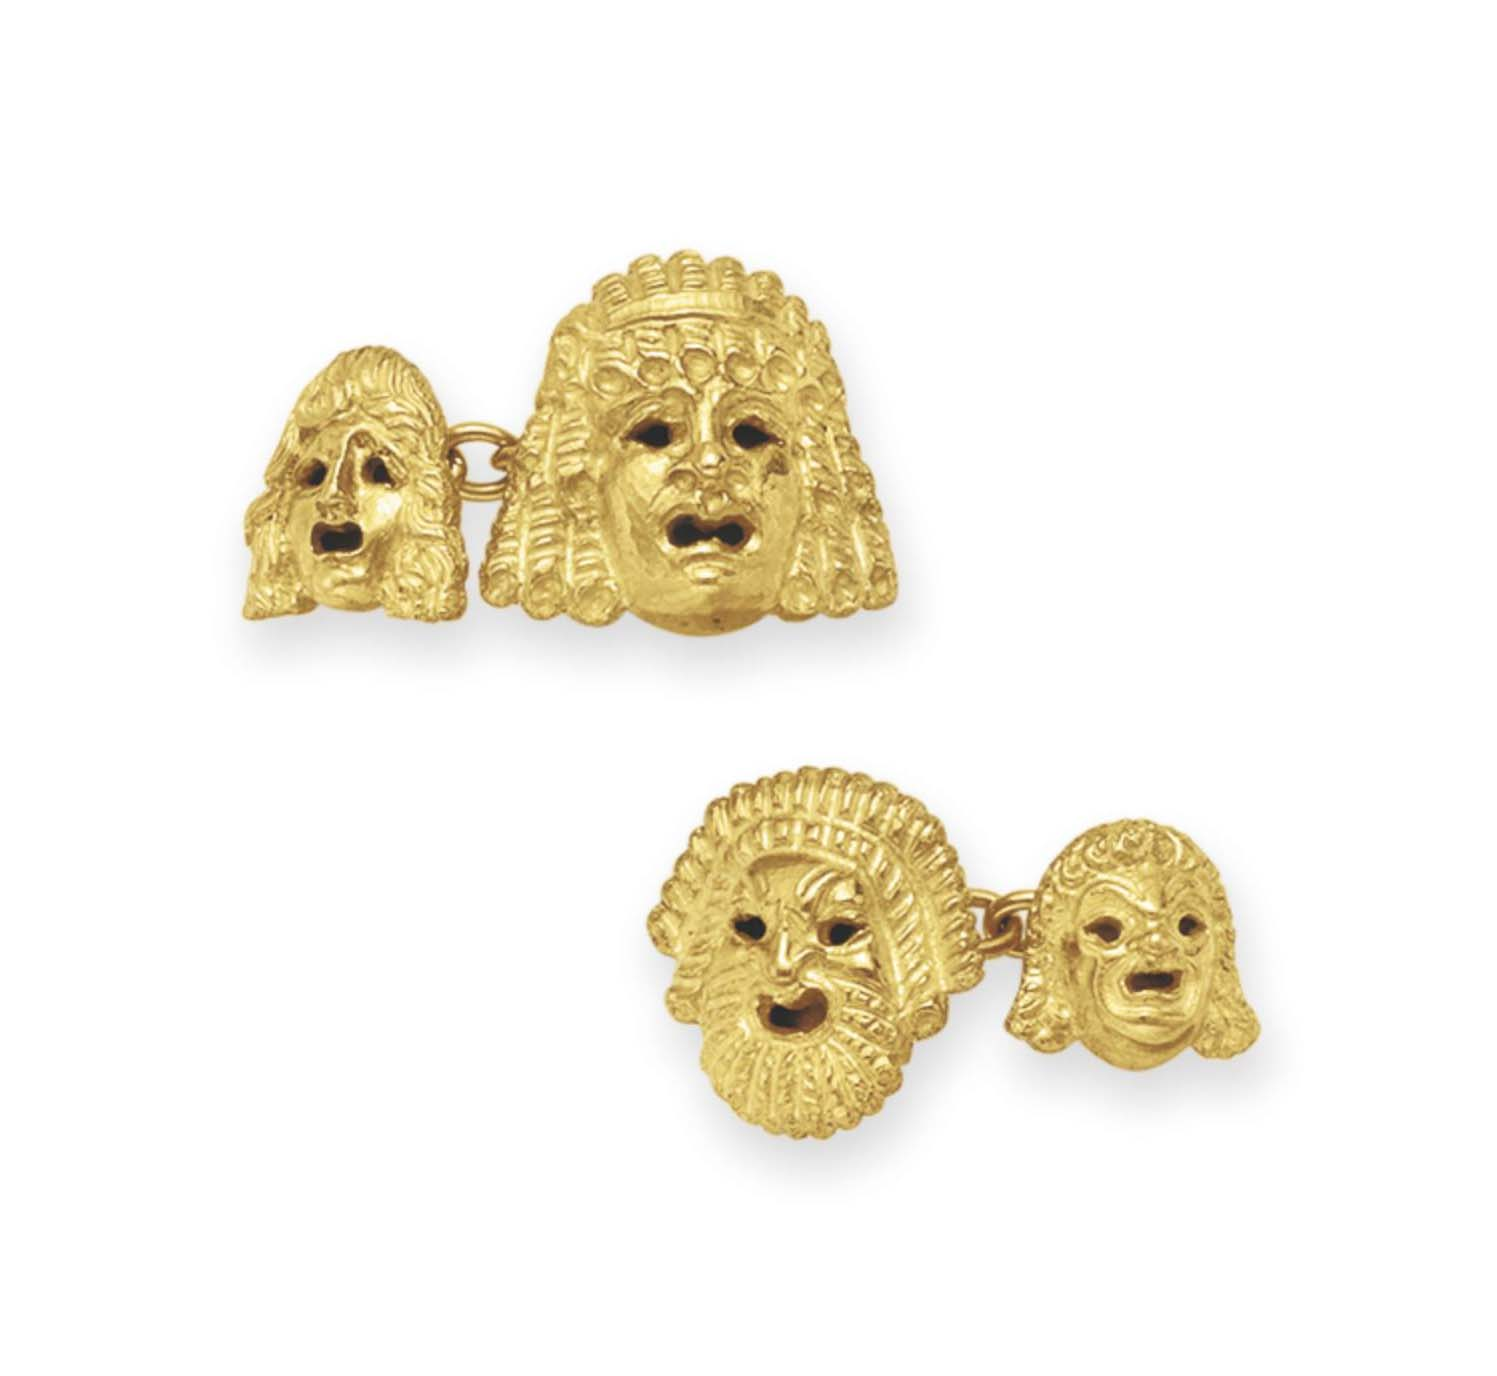 A PAIR OF GOLD CUFFLINKS, BY B